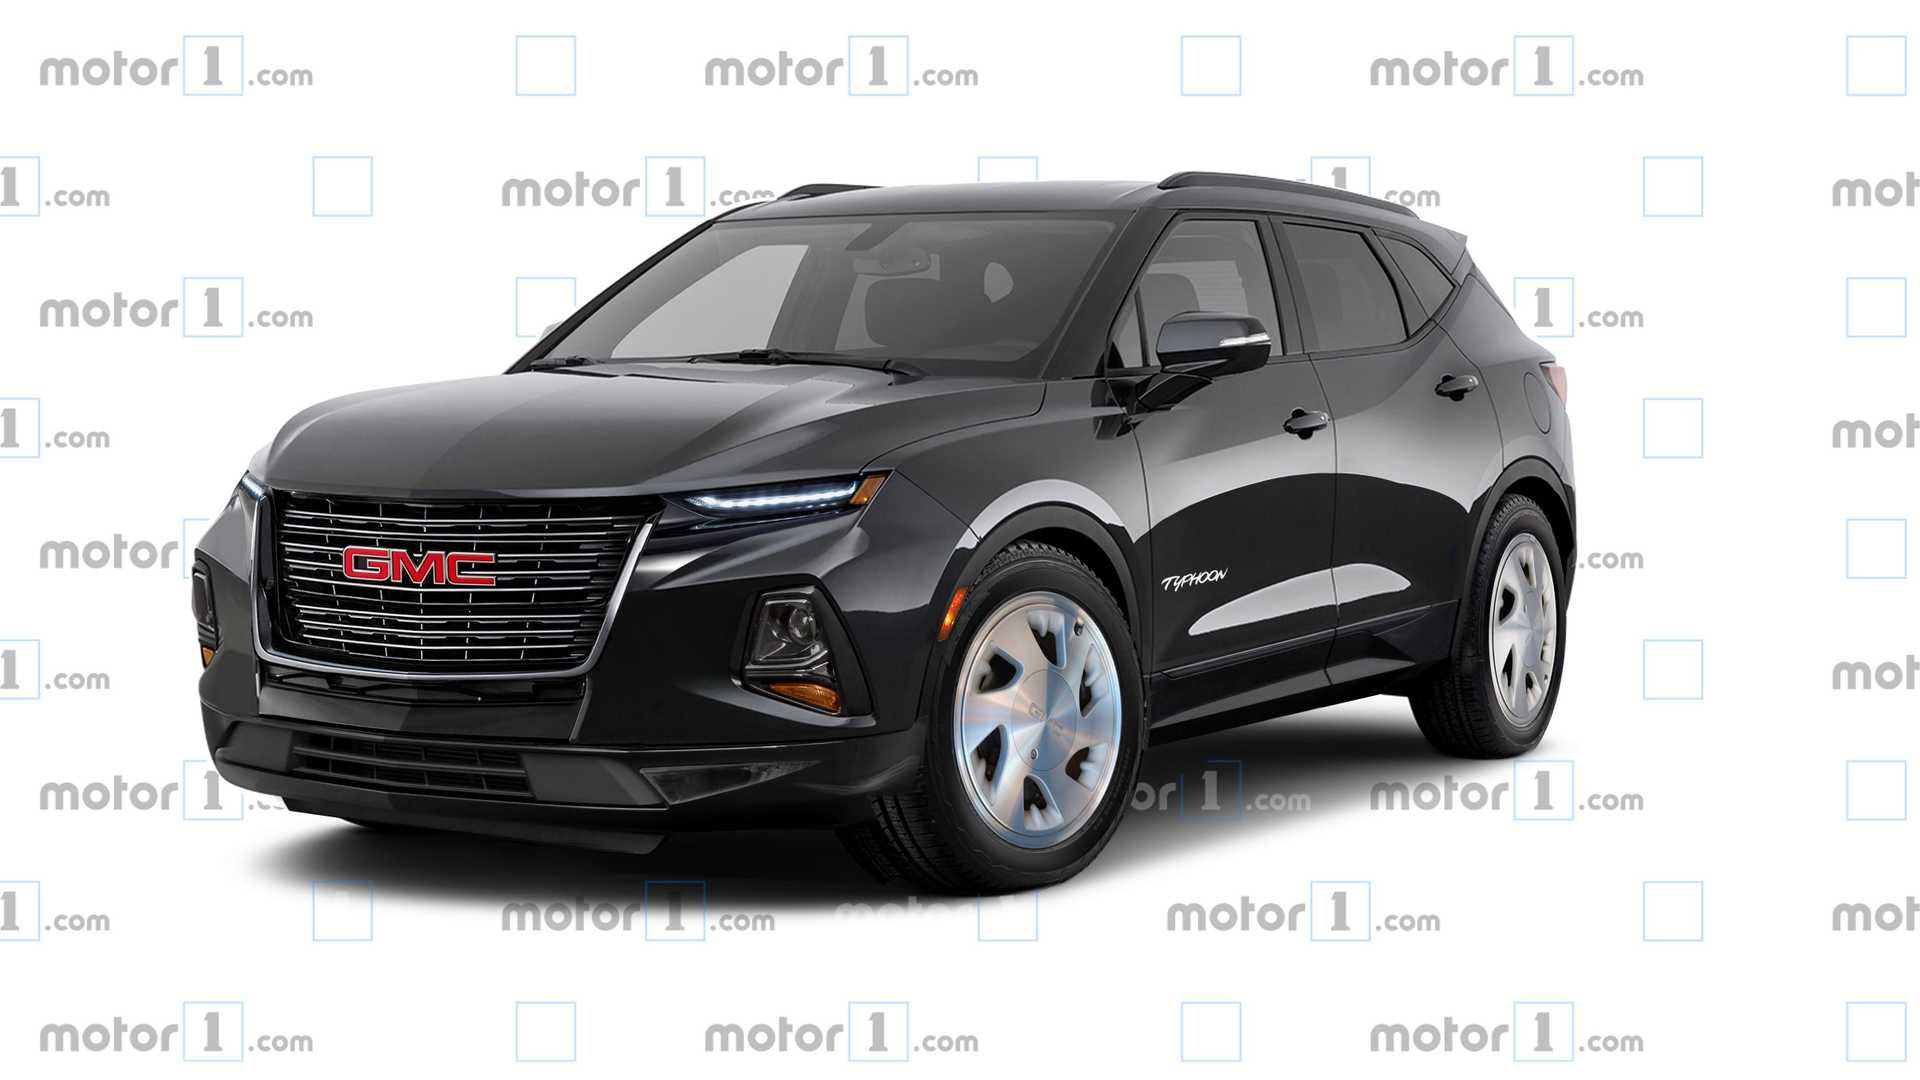 Gmc Typhoon Rendering Is The 500-Hp Chevy Blazer We Want 2022 Chevrolet Blazer Photos, Specifications, Seat Covers